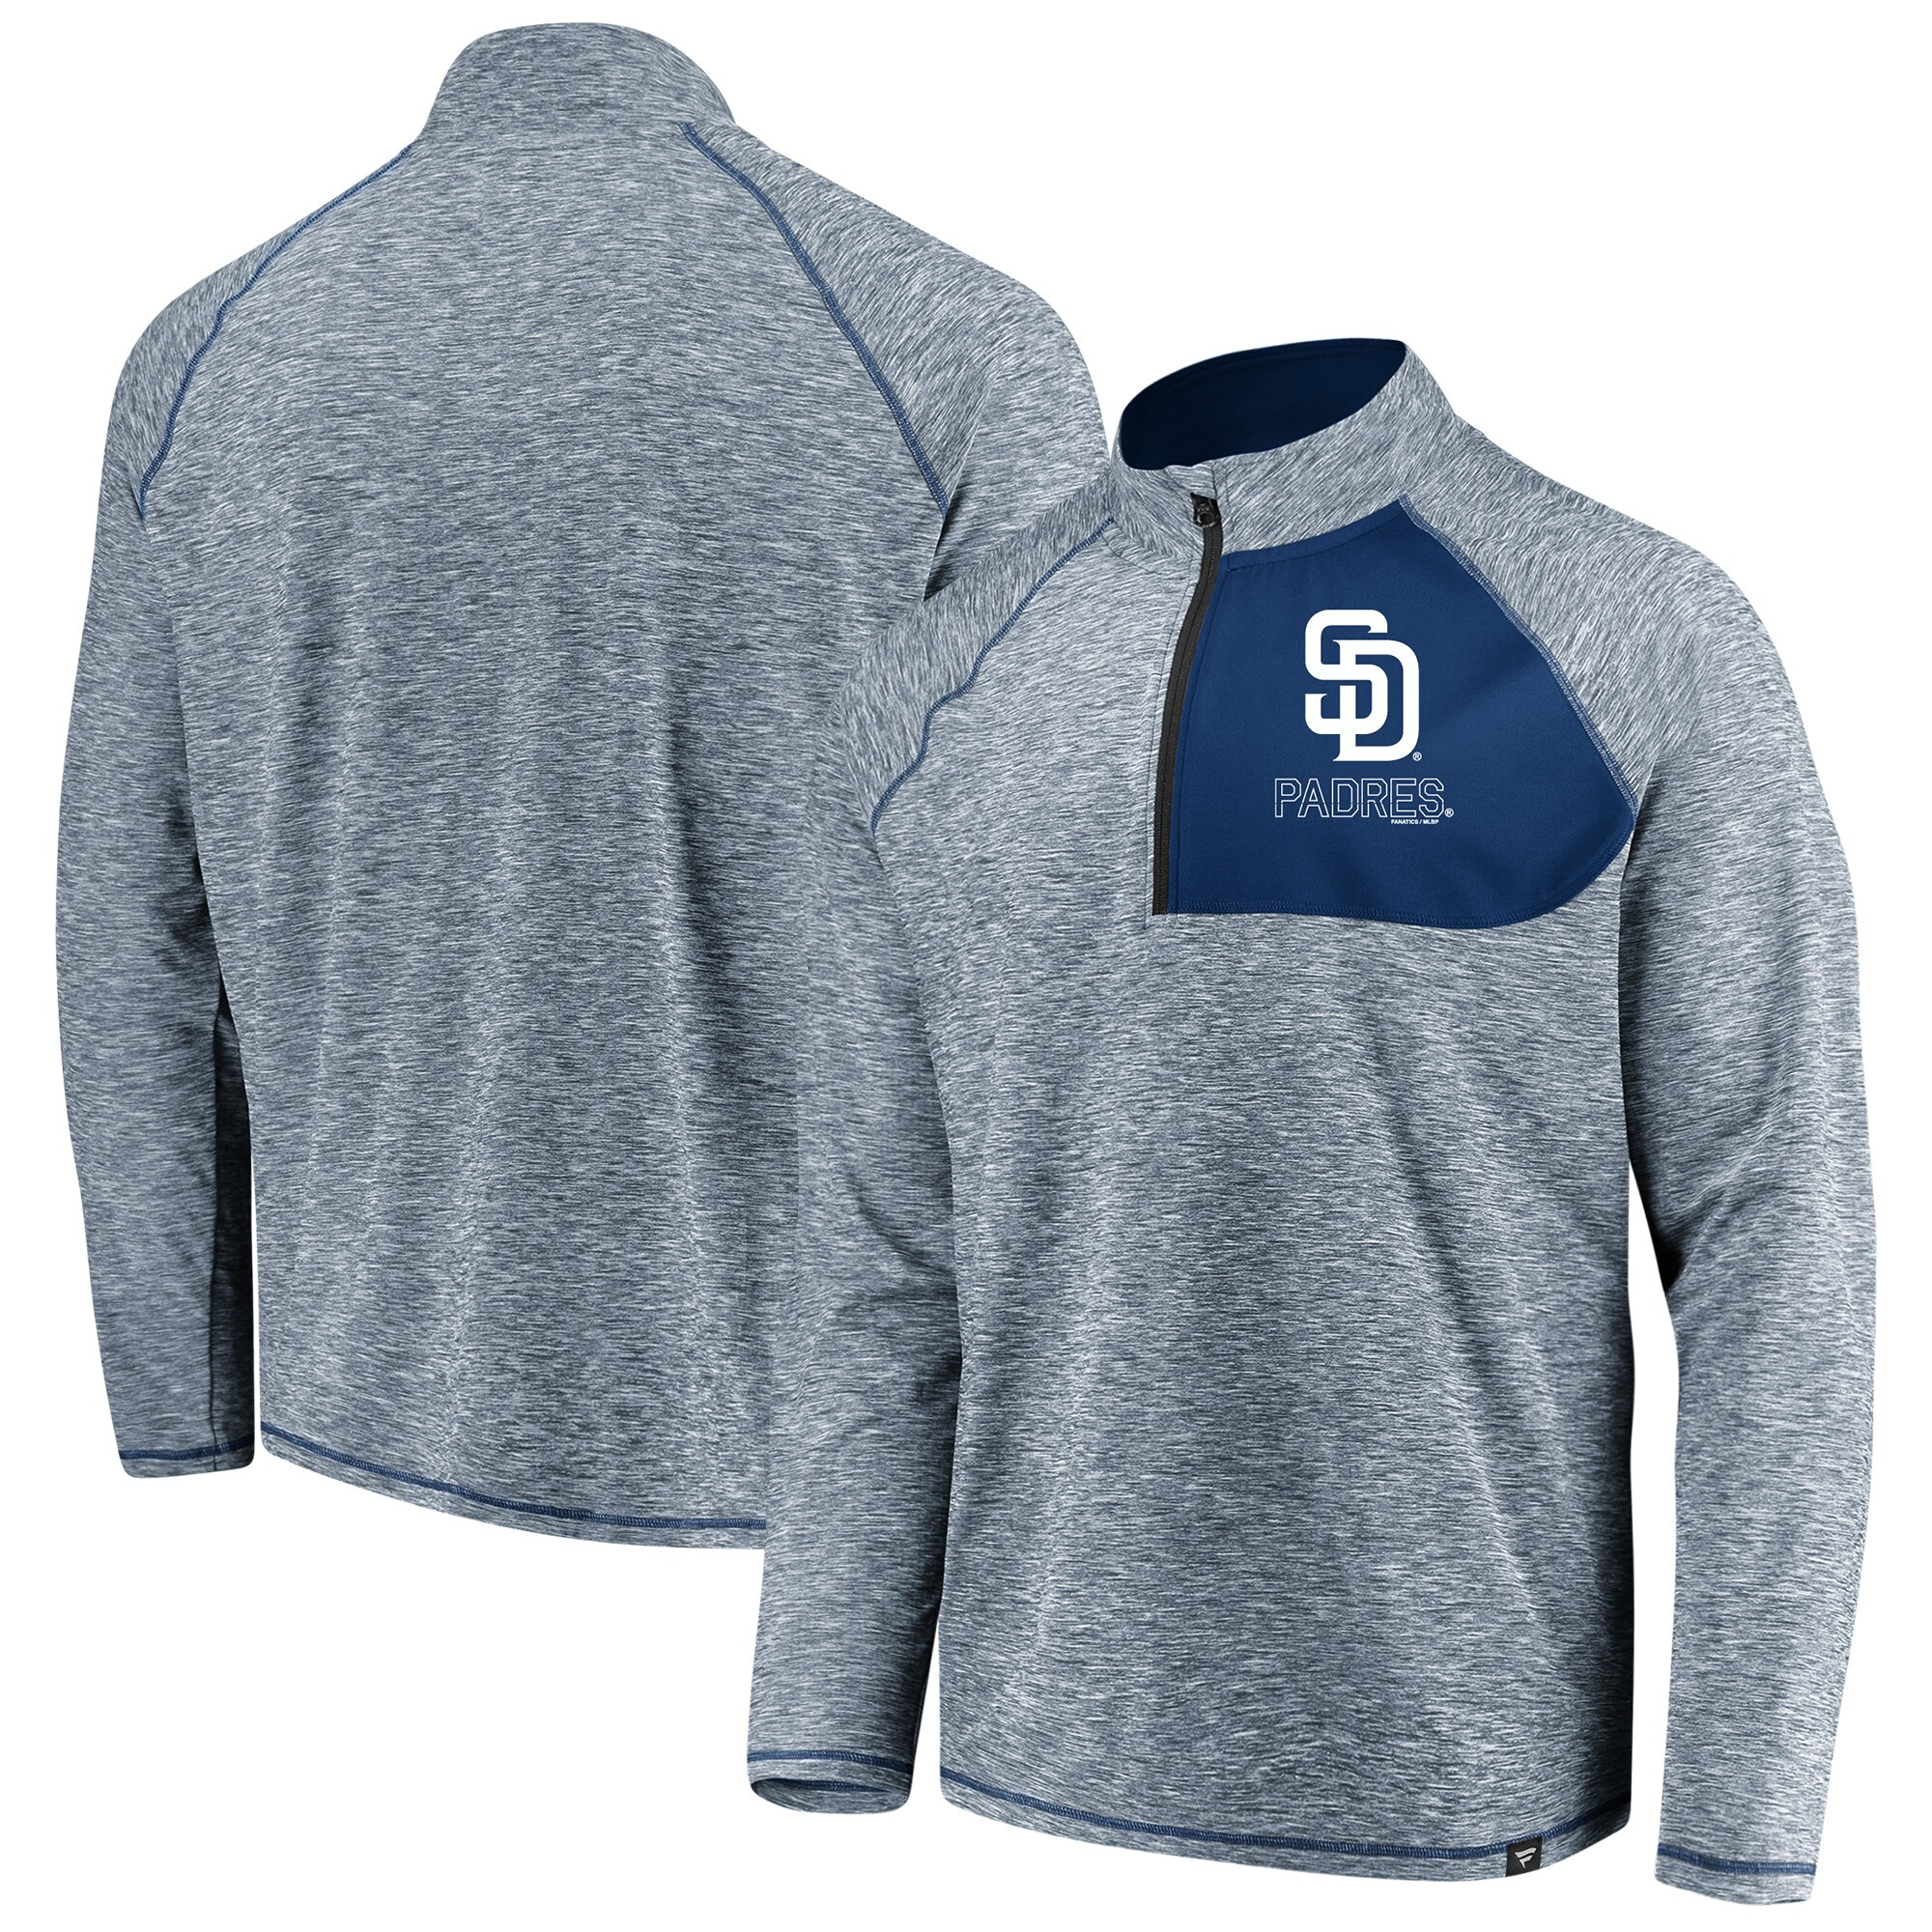 San Diego Padres Fanatics Branded Made 2 Move Quarter-Zip Jacket - Navy